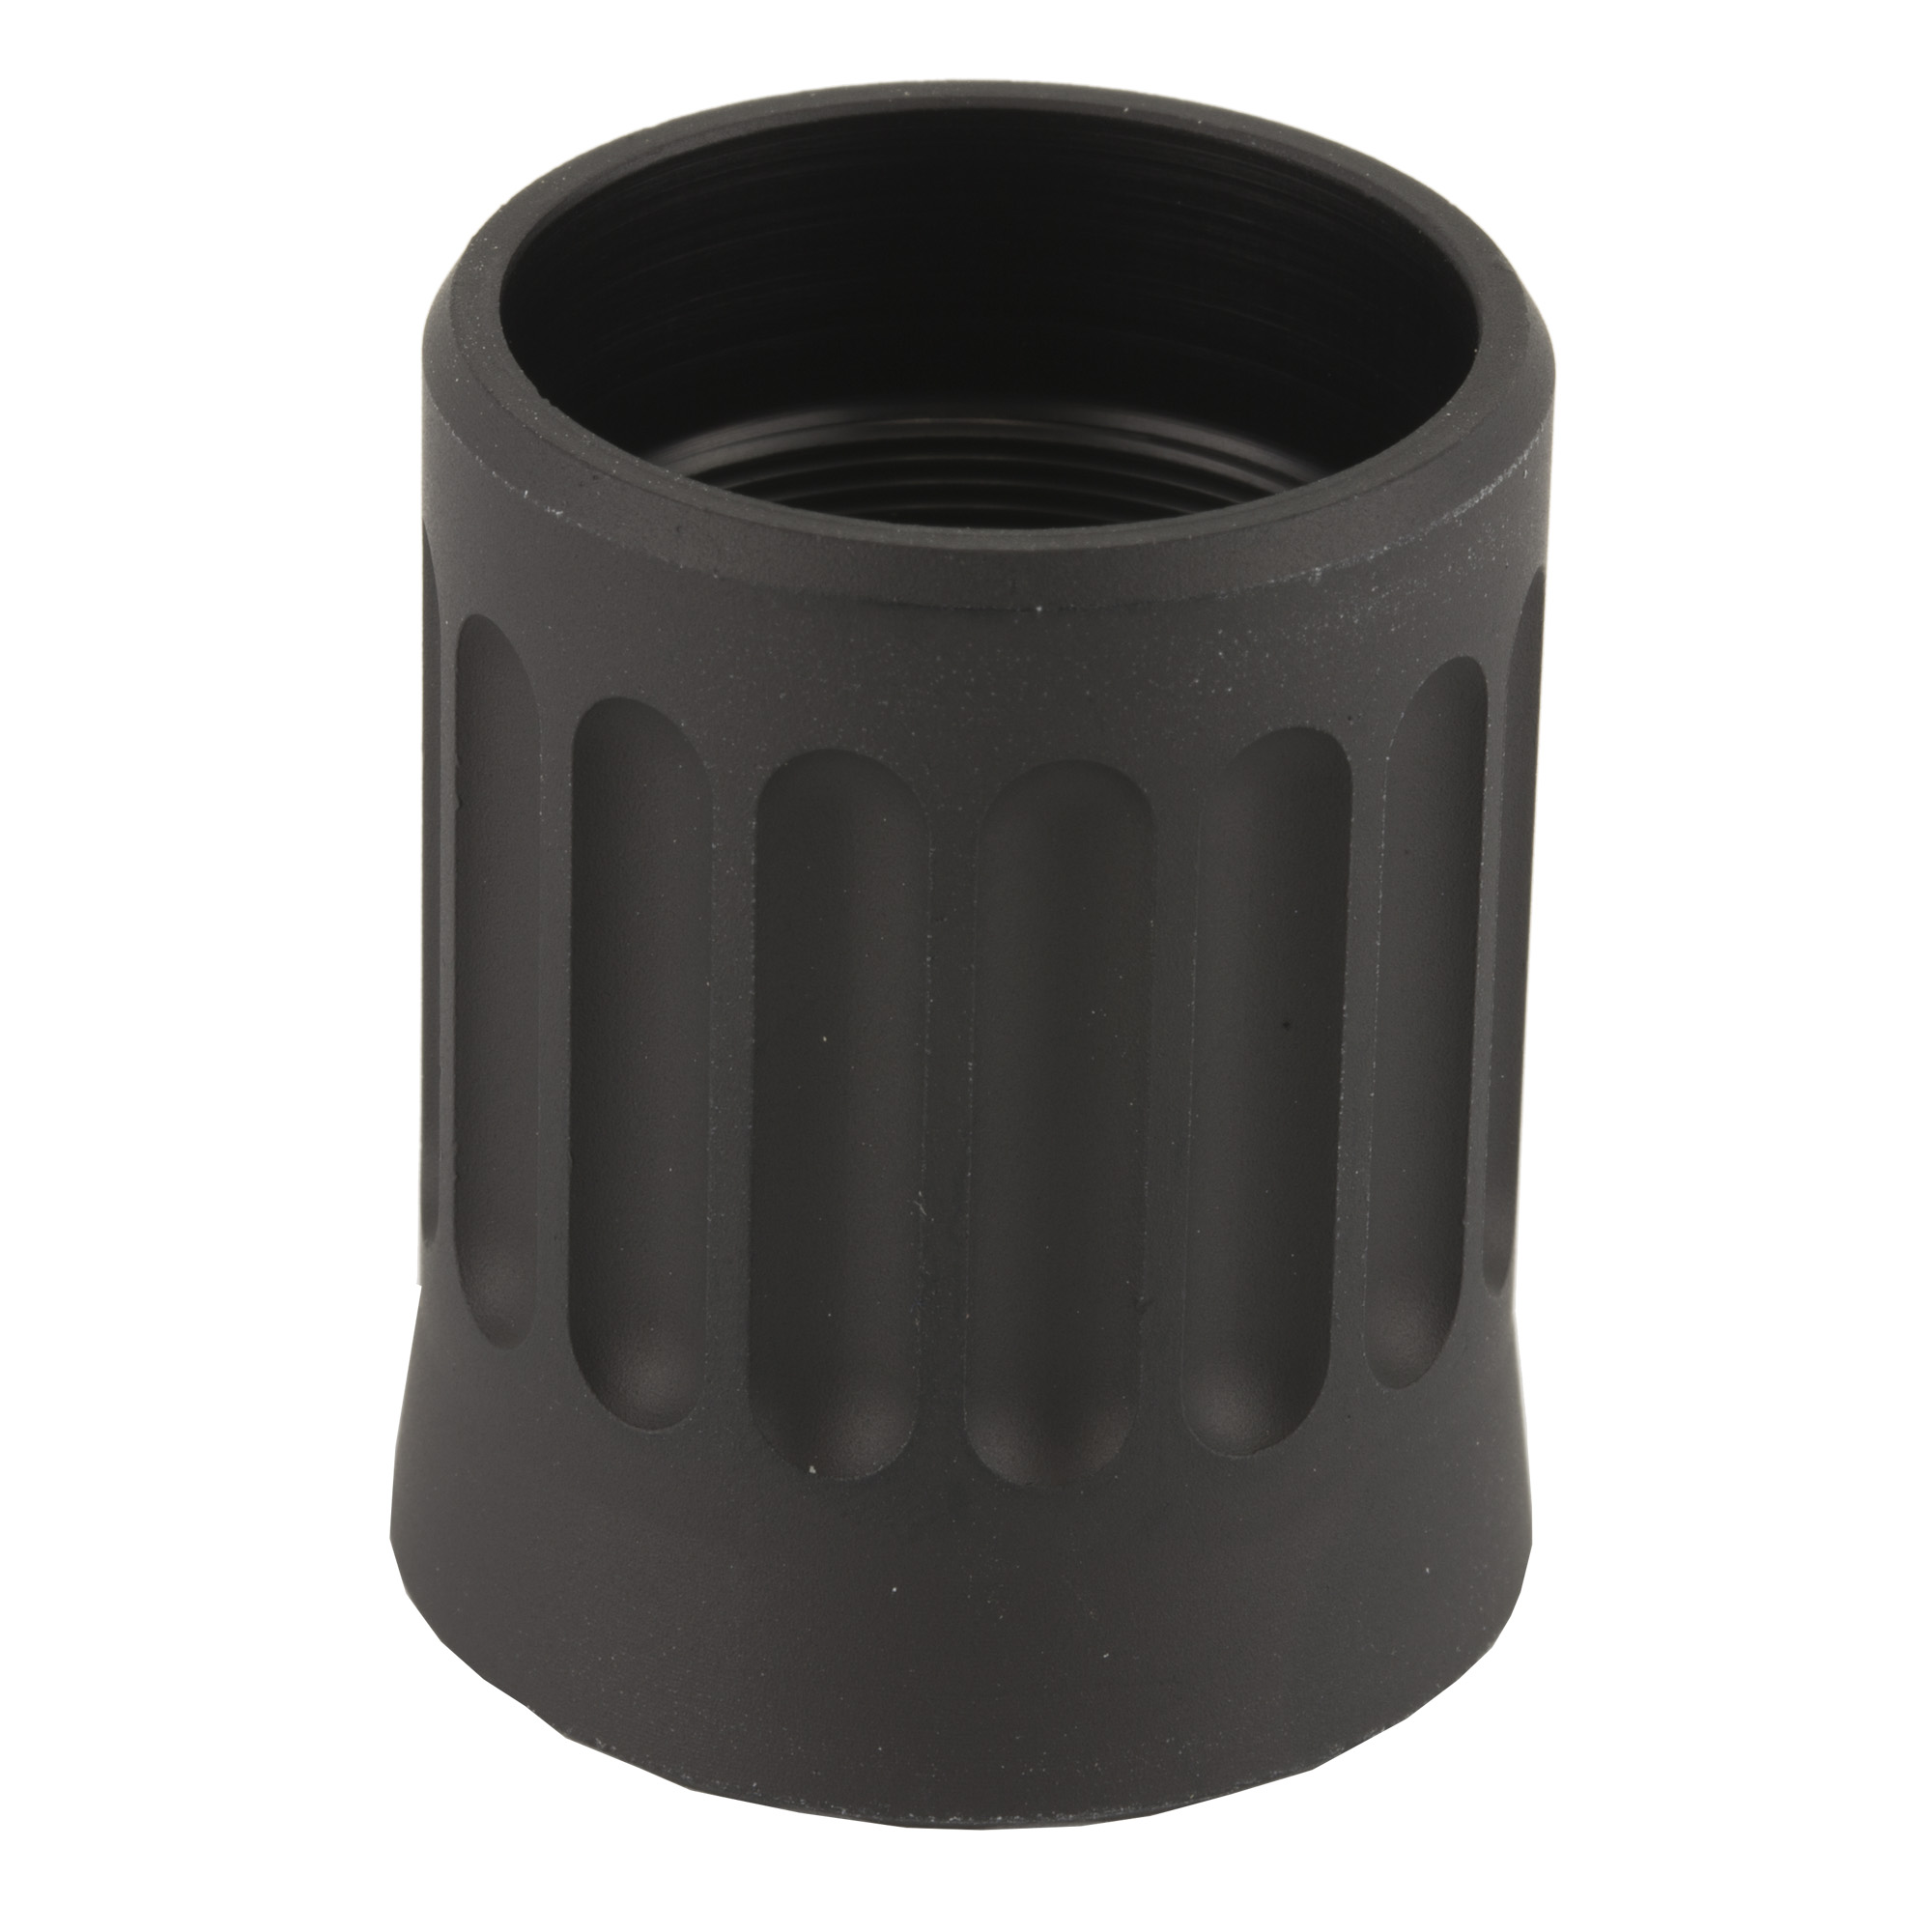 Nordic Components Magazine Extension Nut 12 Gauge Stoeger 2000